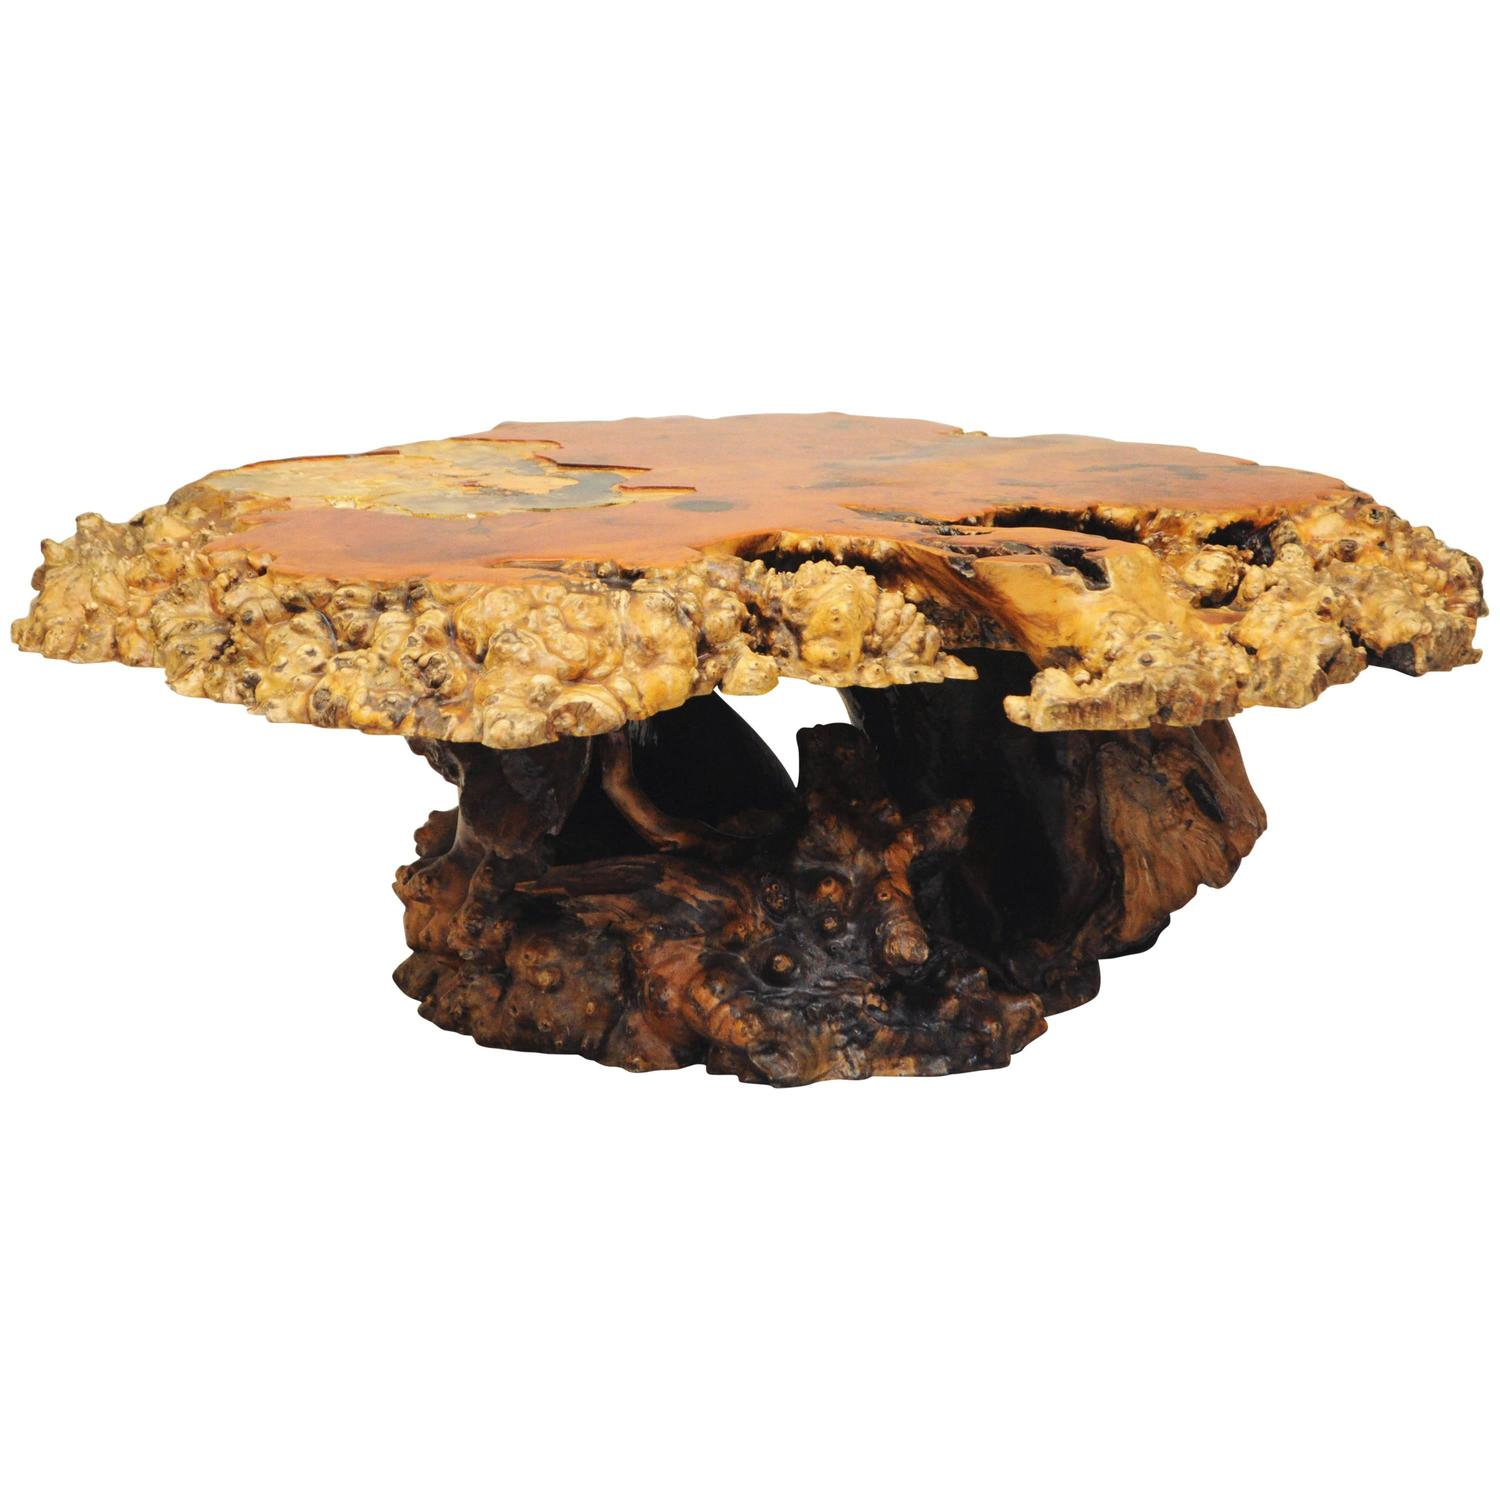 California Redwood Burl Coffee Table For Sale at 1stdibs